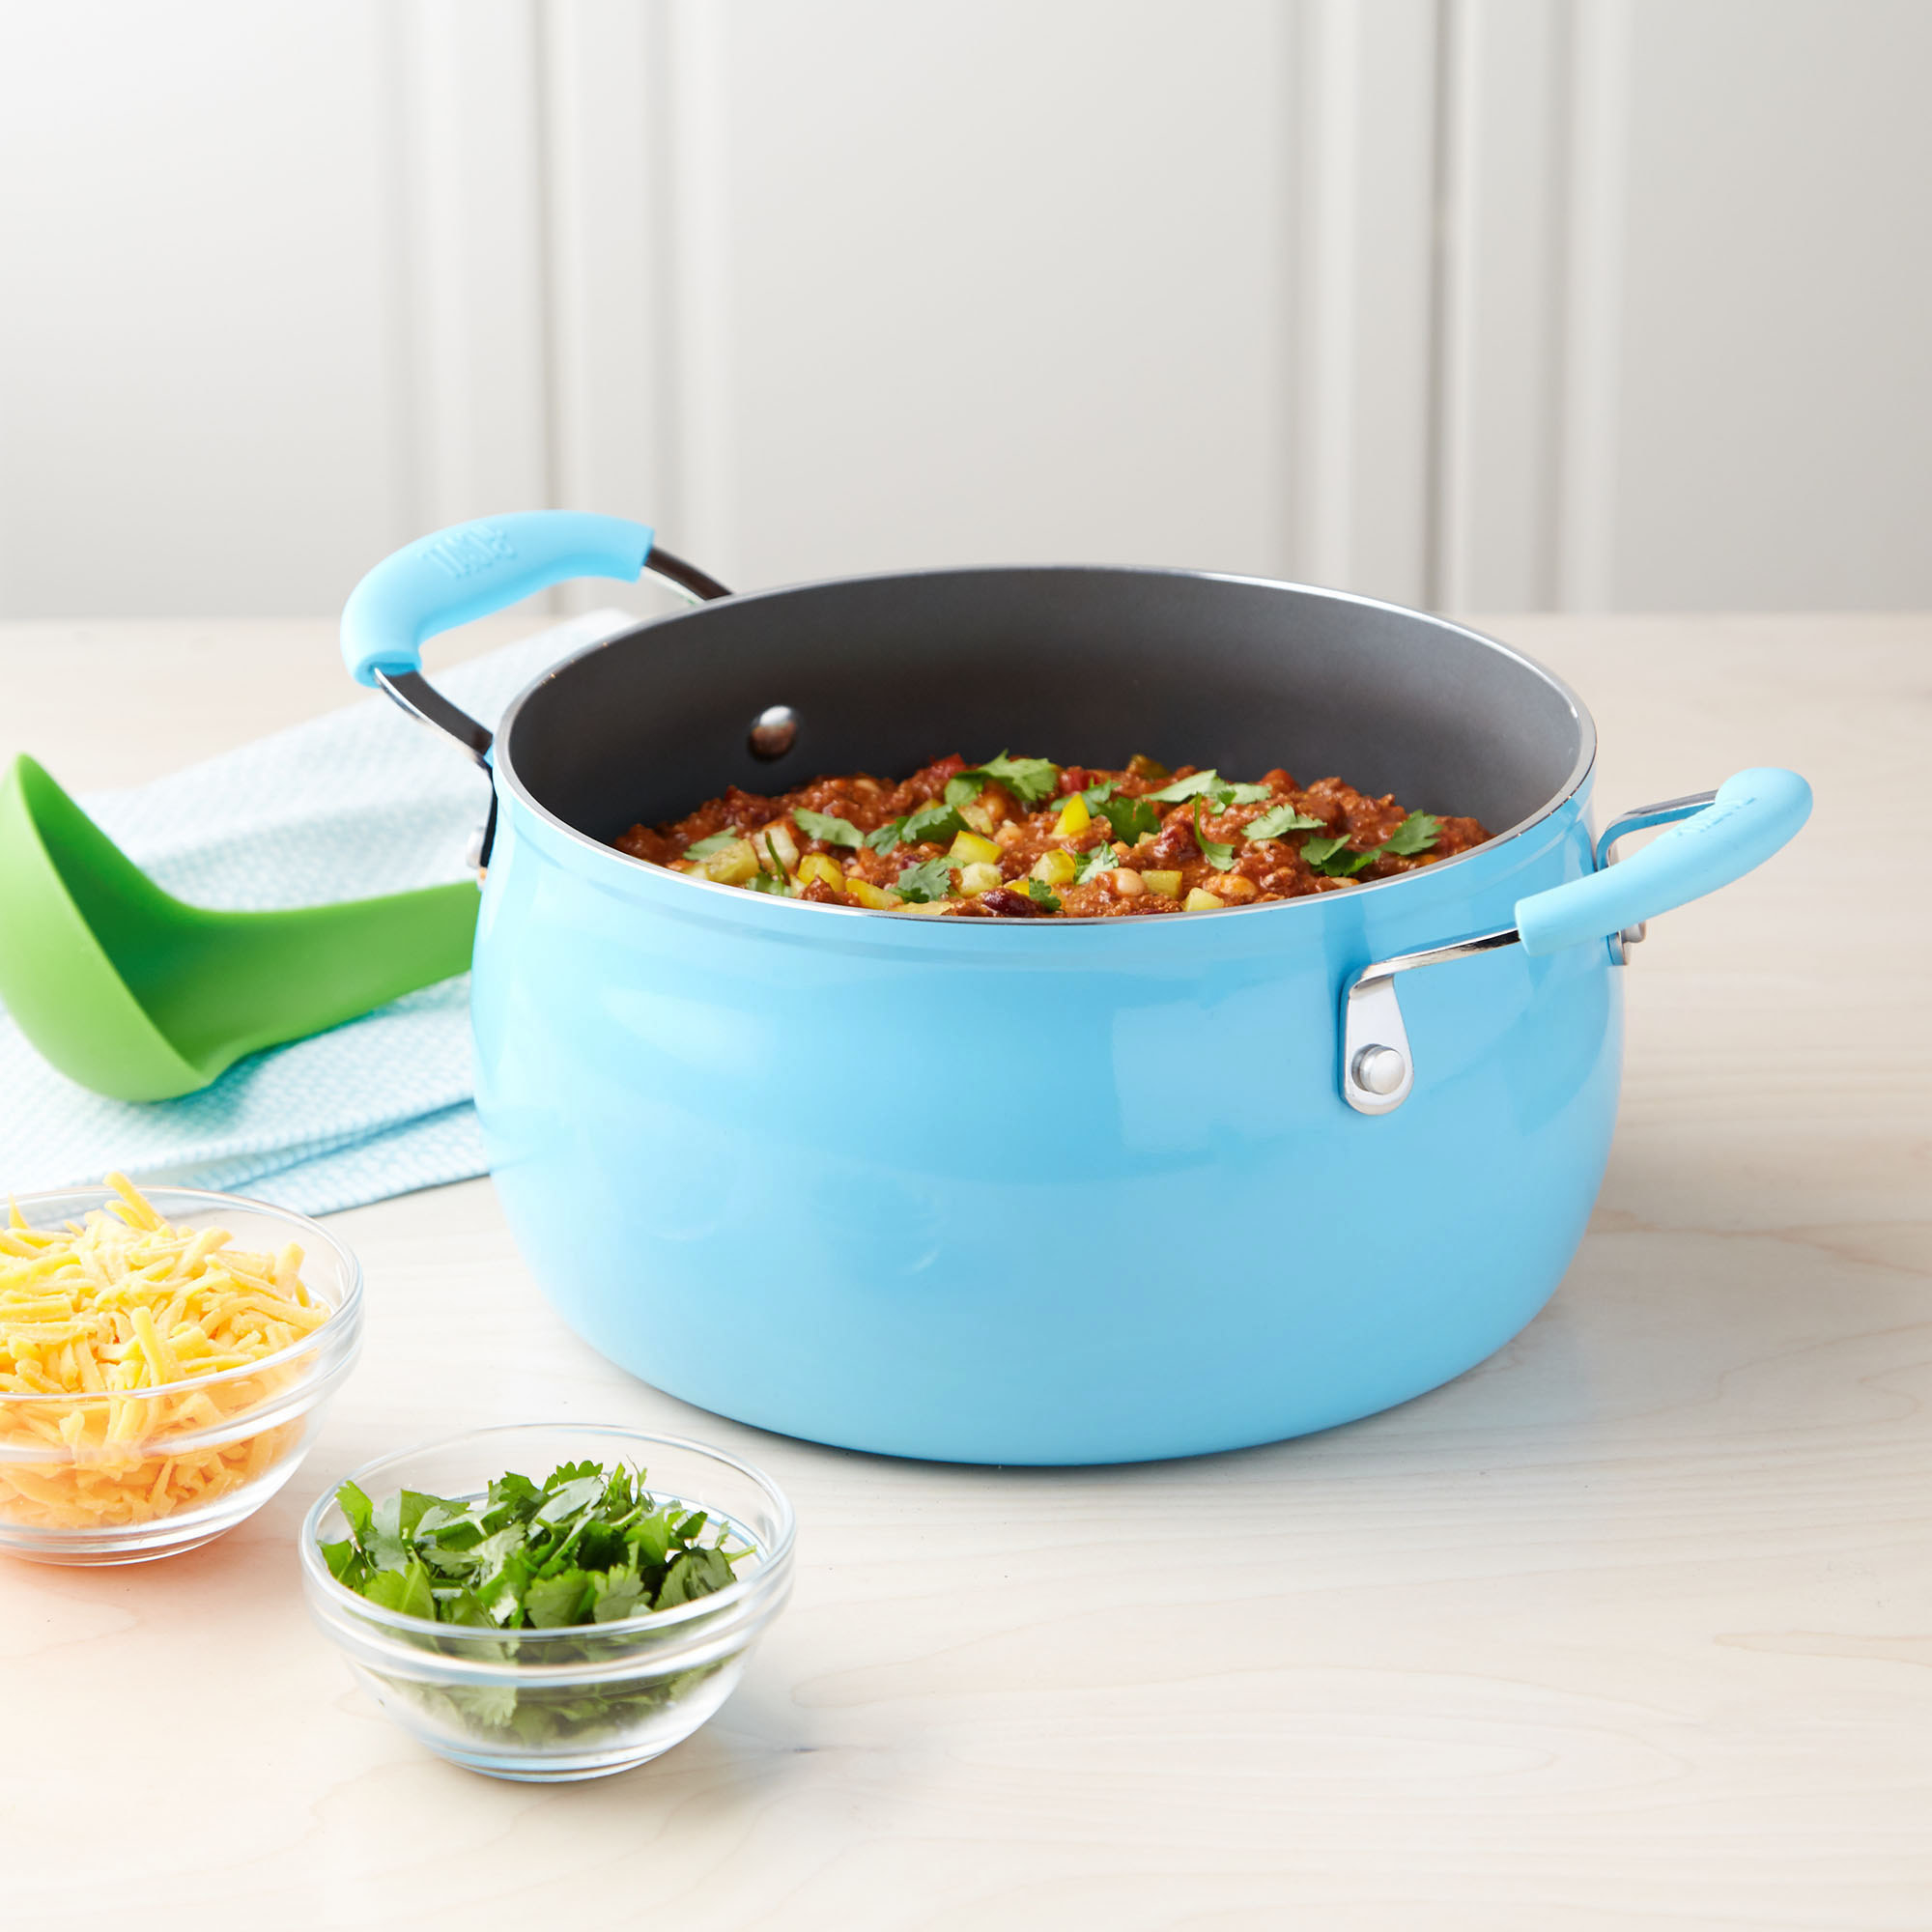 The dutch oven in turquoise filled with chili to show its cooking functionality